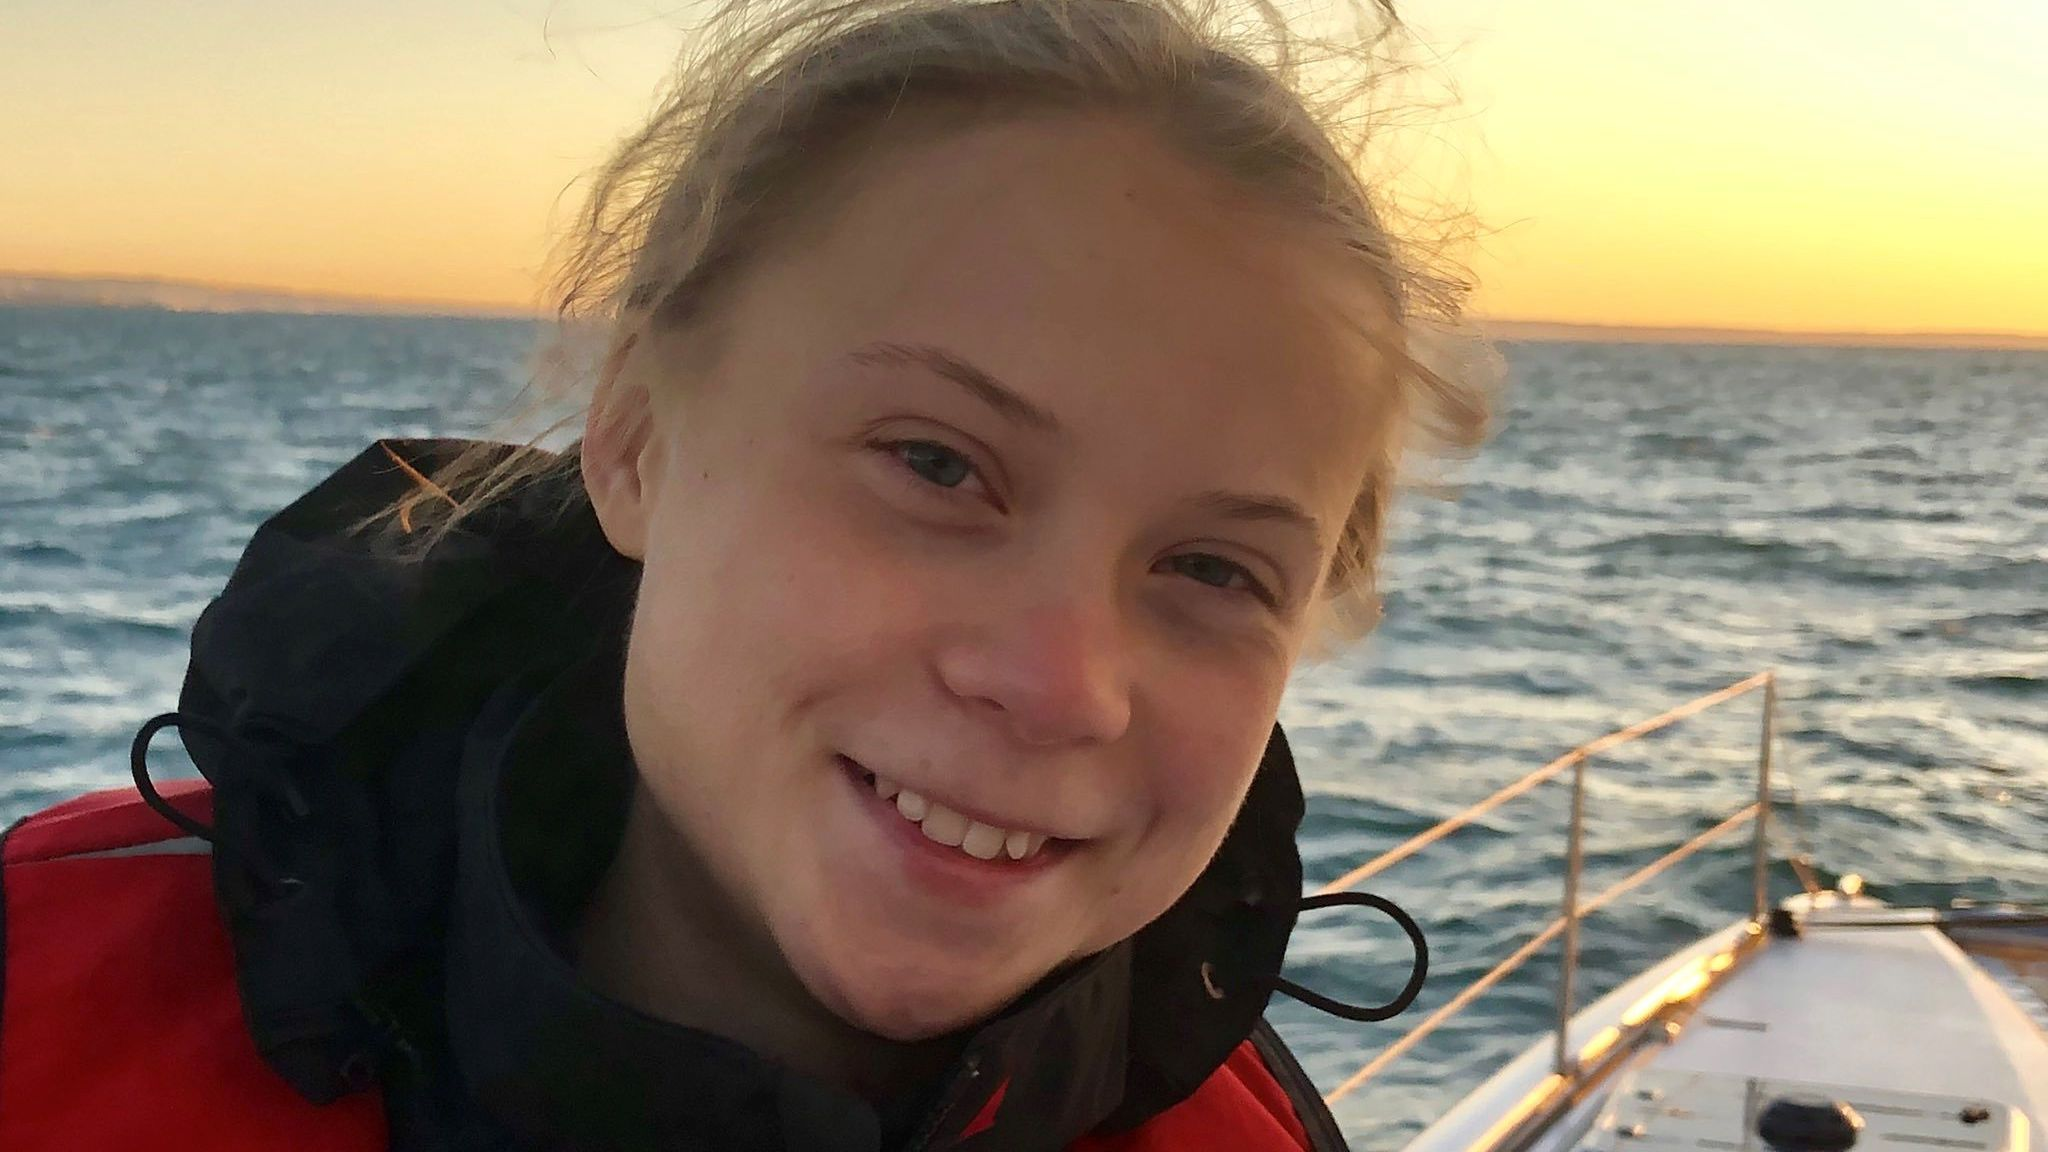 Greta Thunberg, is due to attend a climate change summit in Madrid